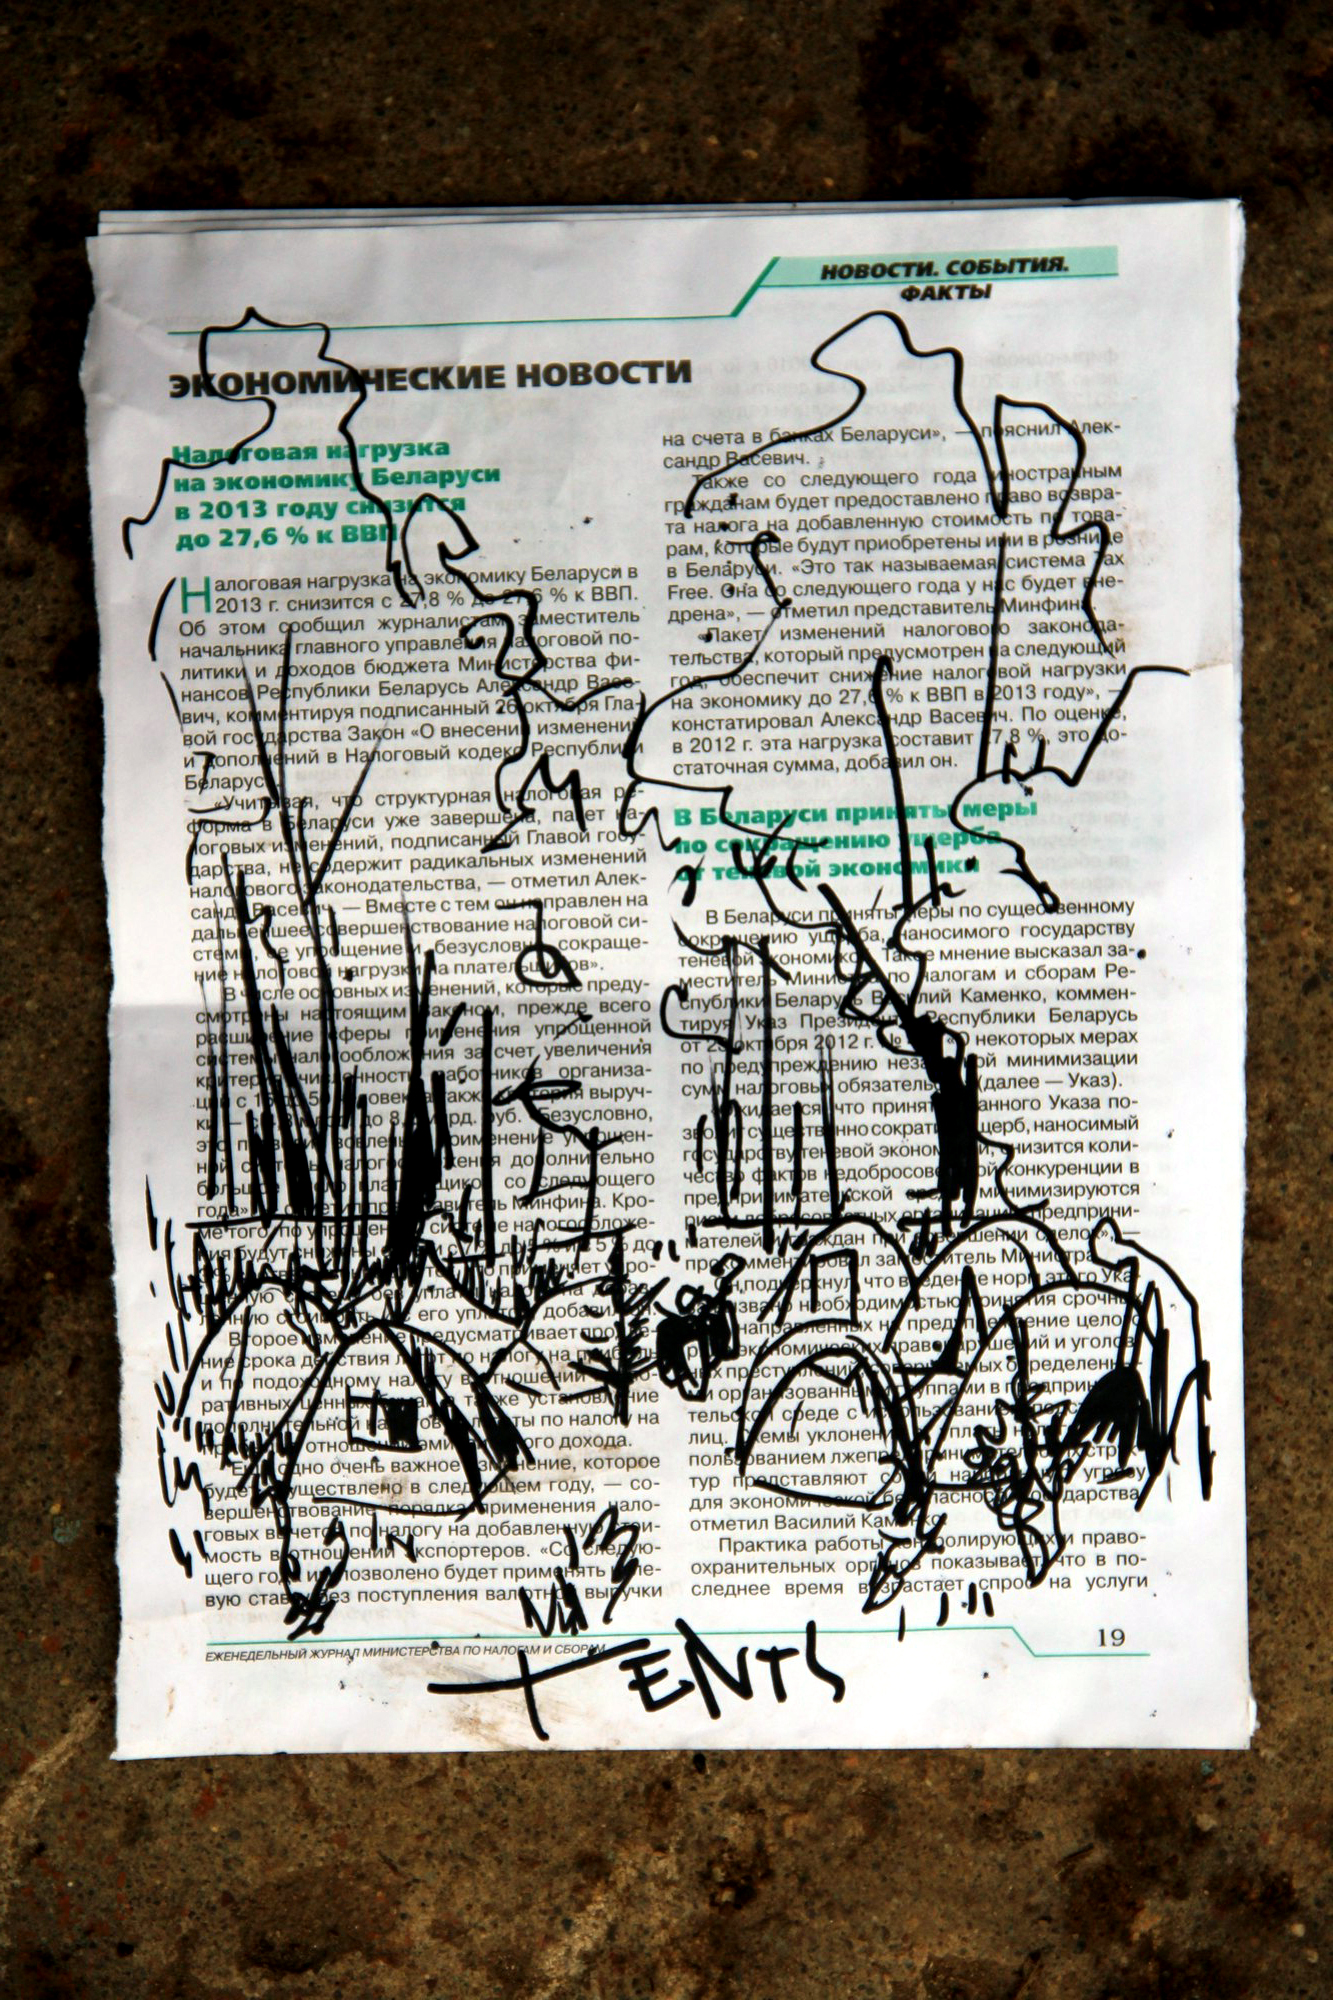 I found this magazin, no idea what it is about, in the stuff to burn at Shanti-Dom. Made some drawings of cooking with the rocketstove and our tents.